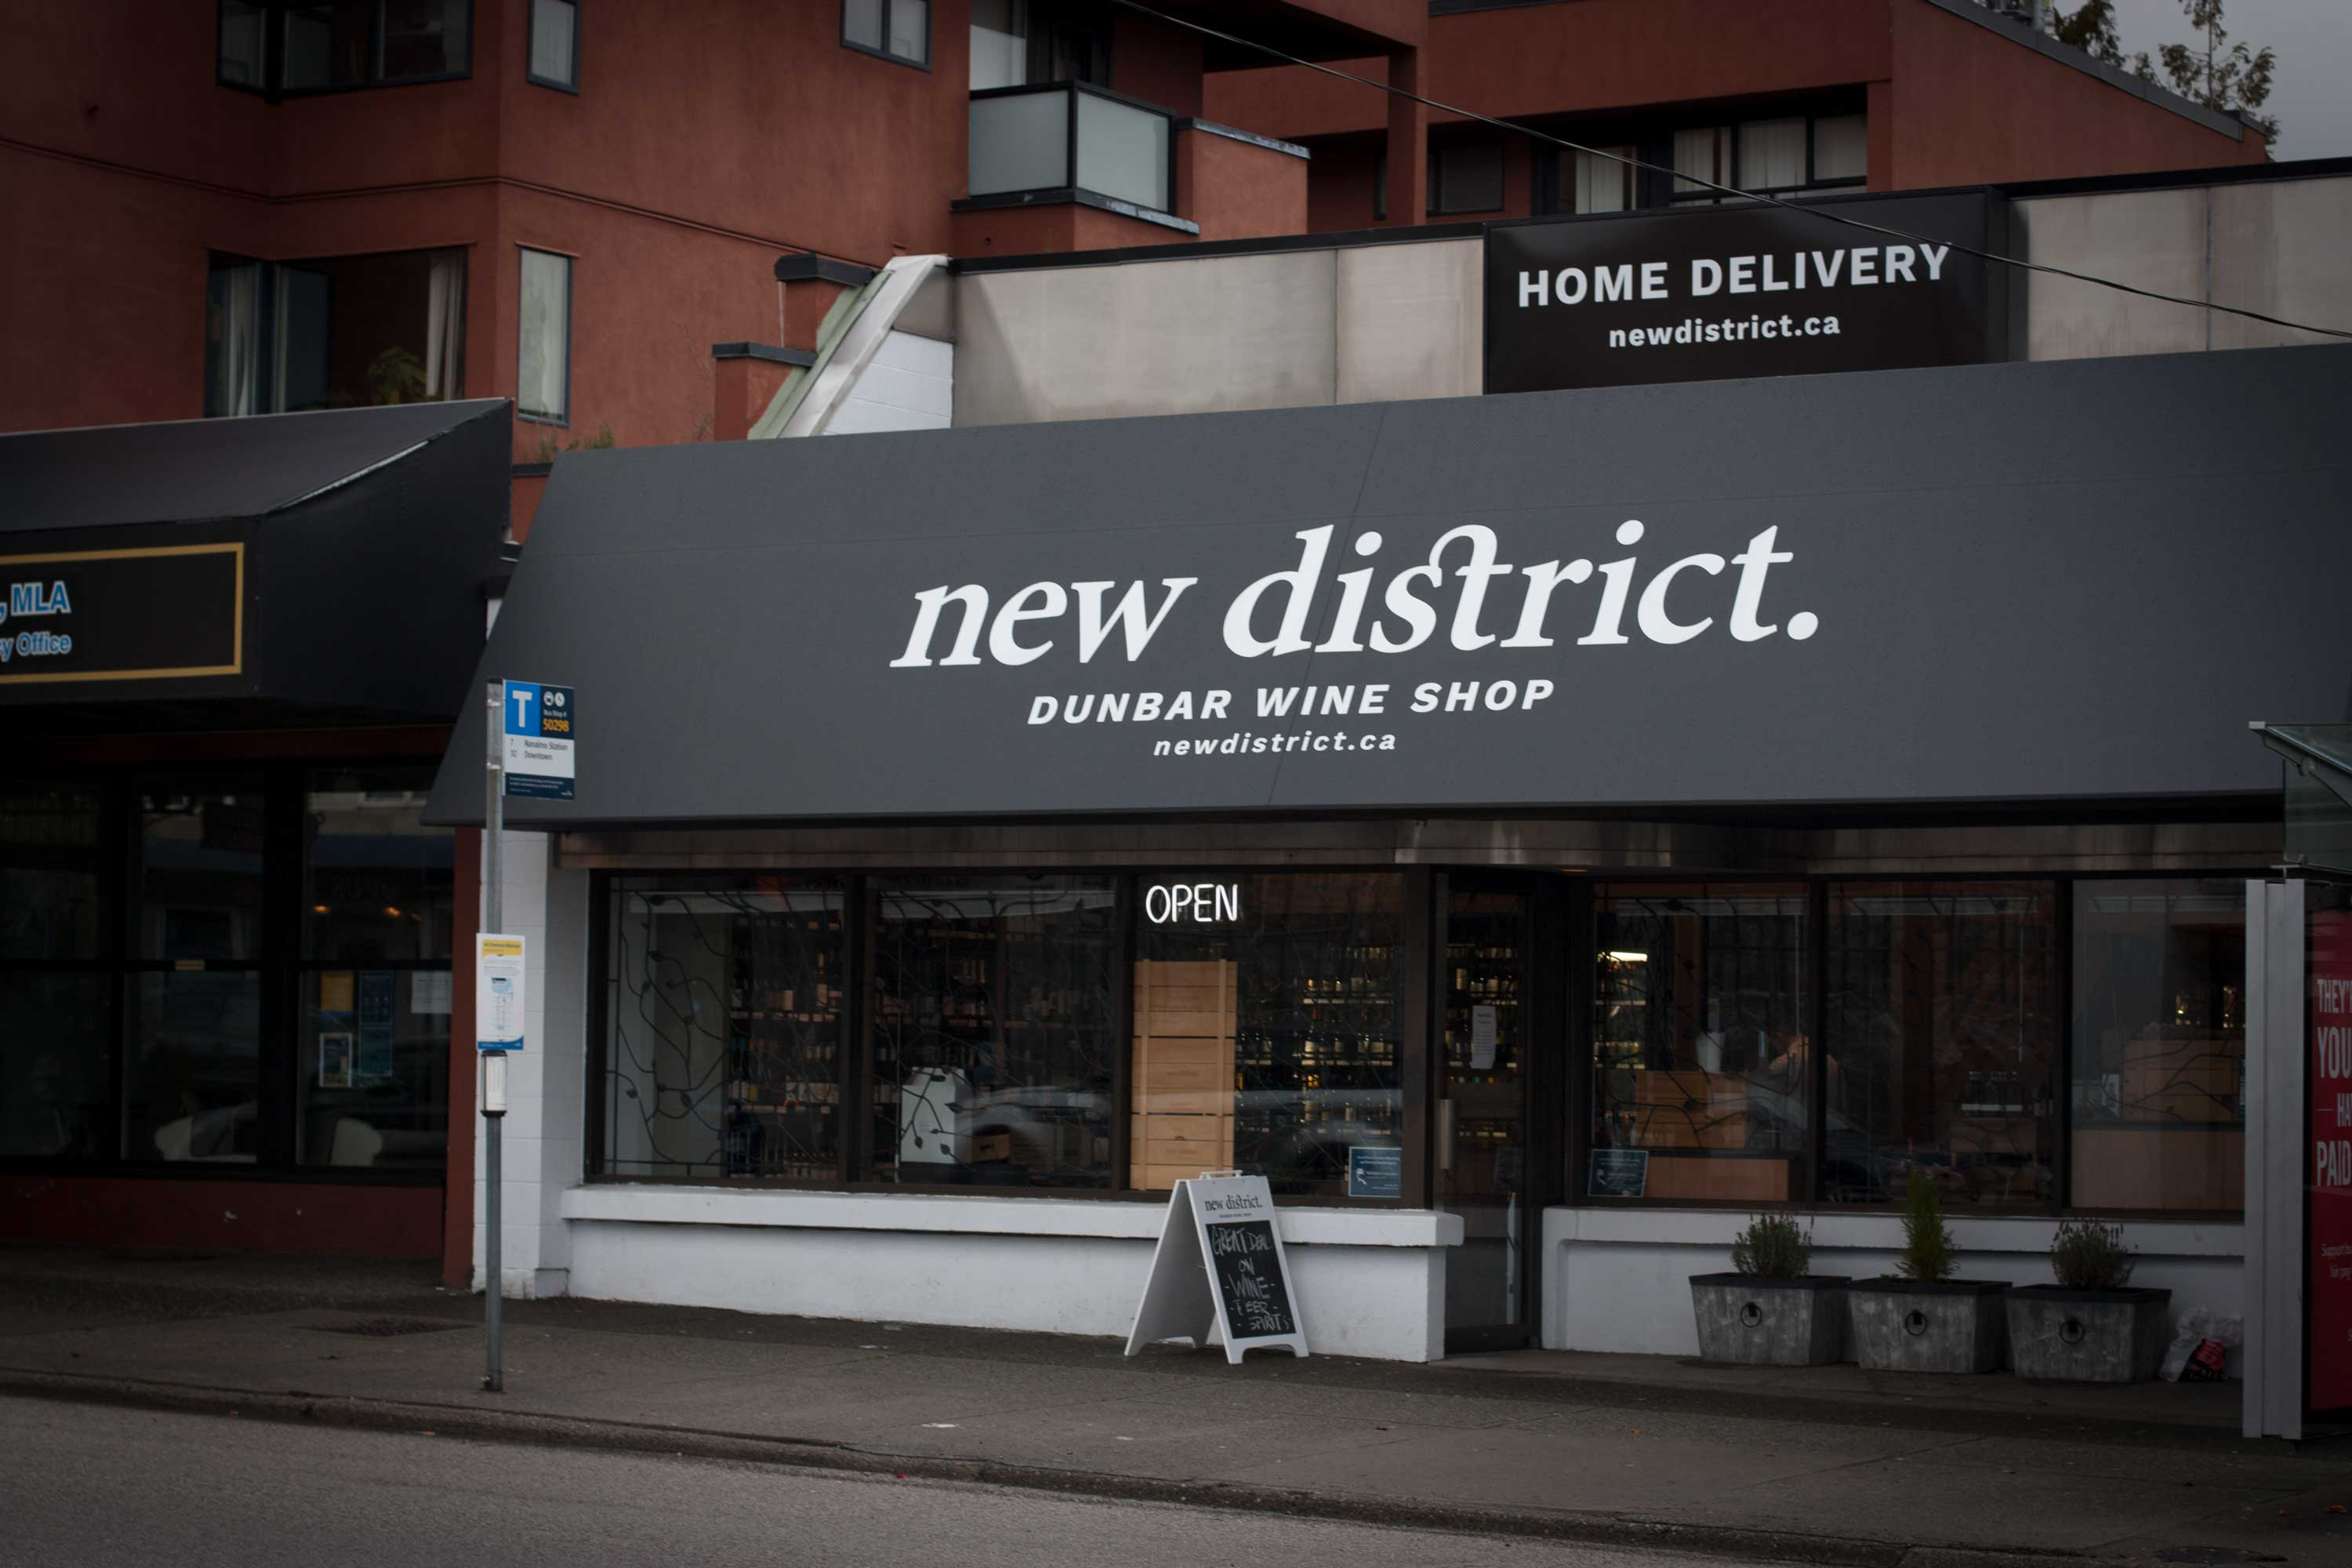 New District Wine Shop exterior with black awning featuring a white logo, and white exterior with packaging and wines showing through — by Yagnyuk.